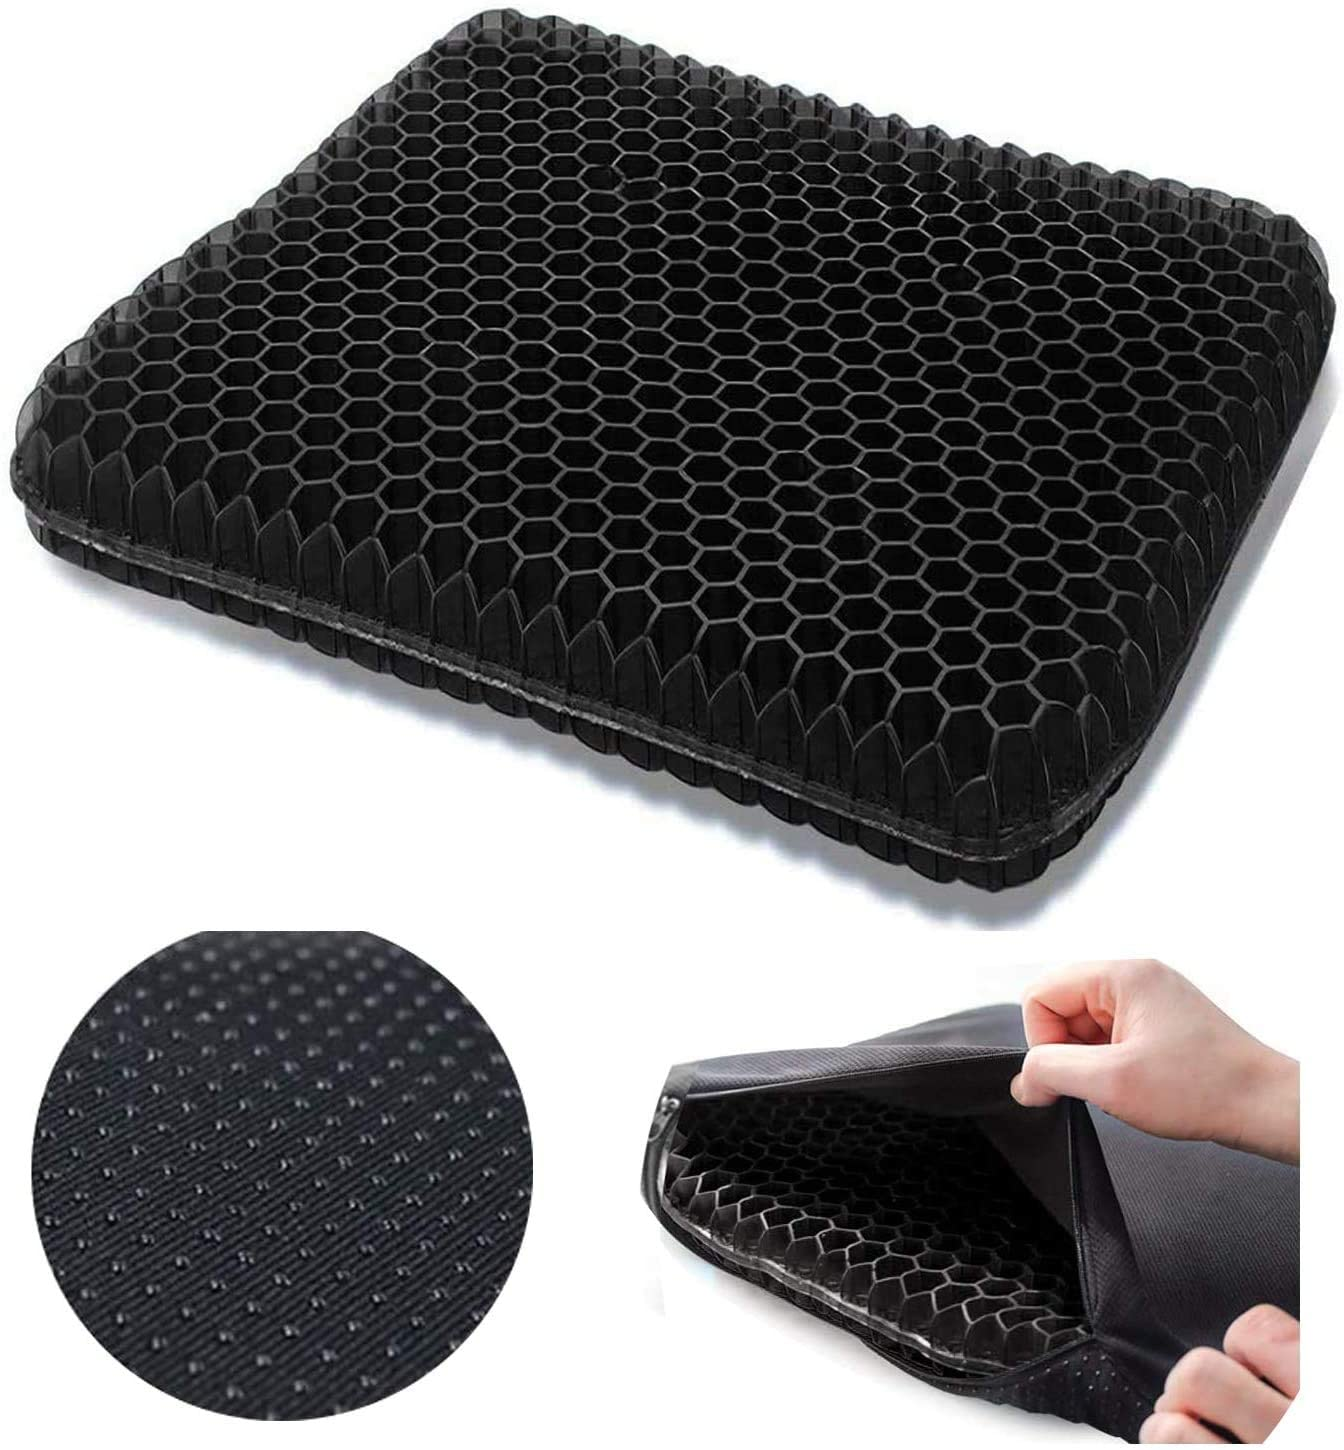 Gel Seat Cushion,Double Thick Seat Cushion,Non-Slip Cover,Help in Relieving Back Pain & Sciatica Pain,Seat Cushion for The Car,Office,Wheelchair&Chair. (Black)